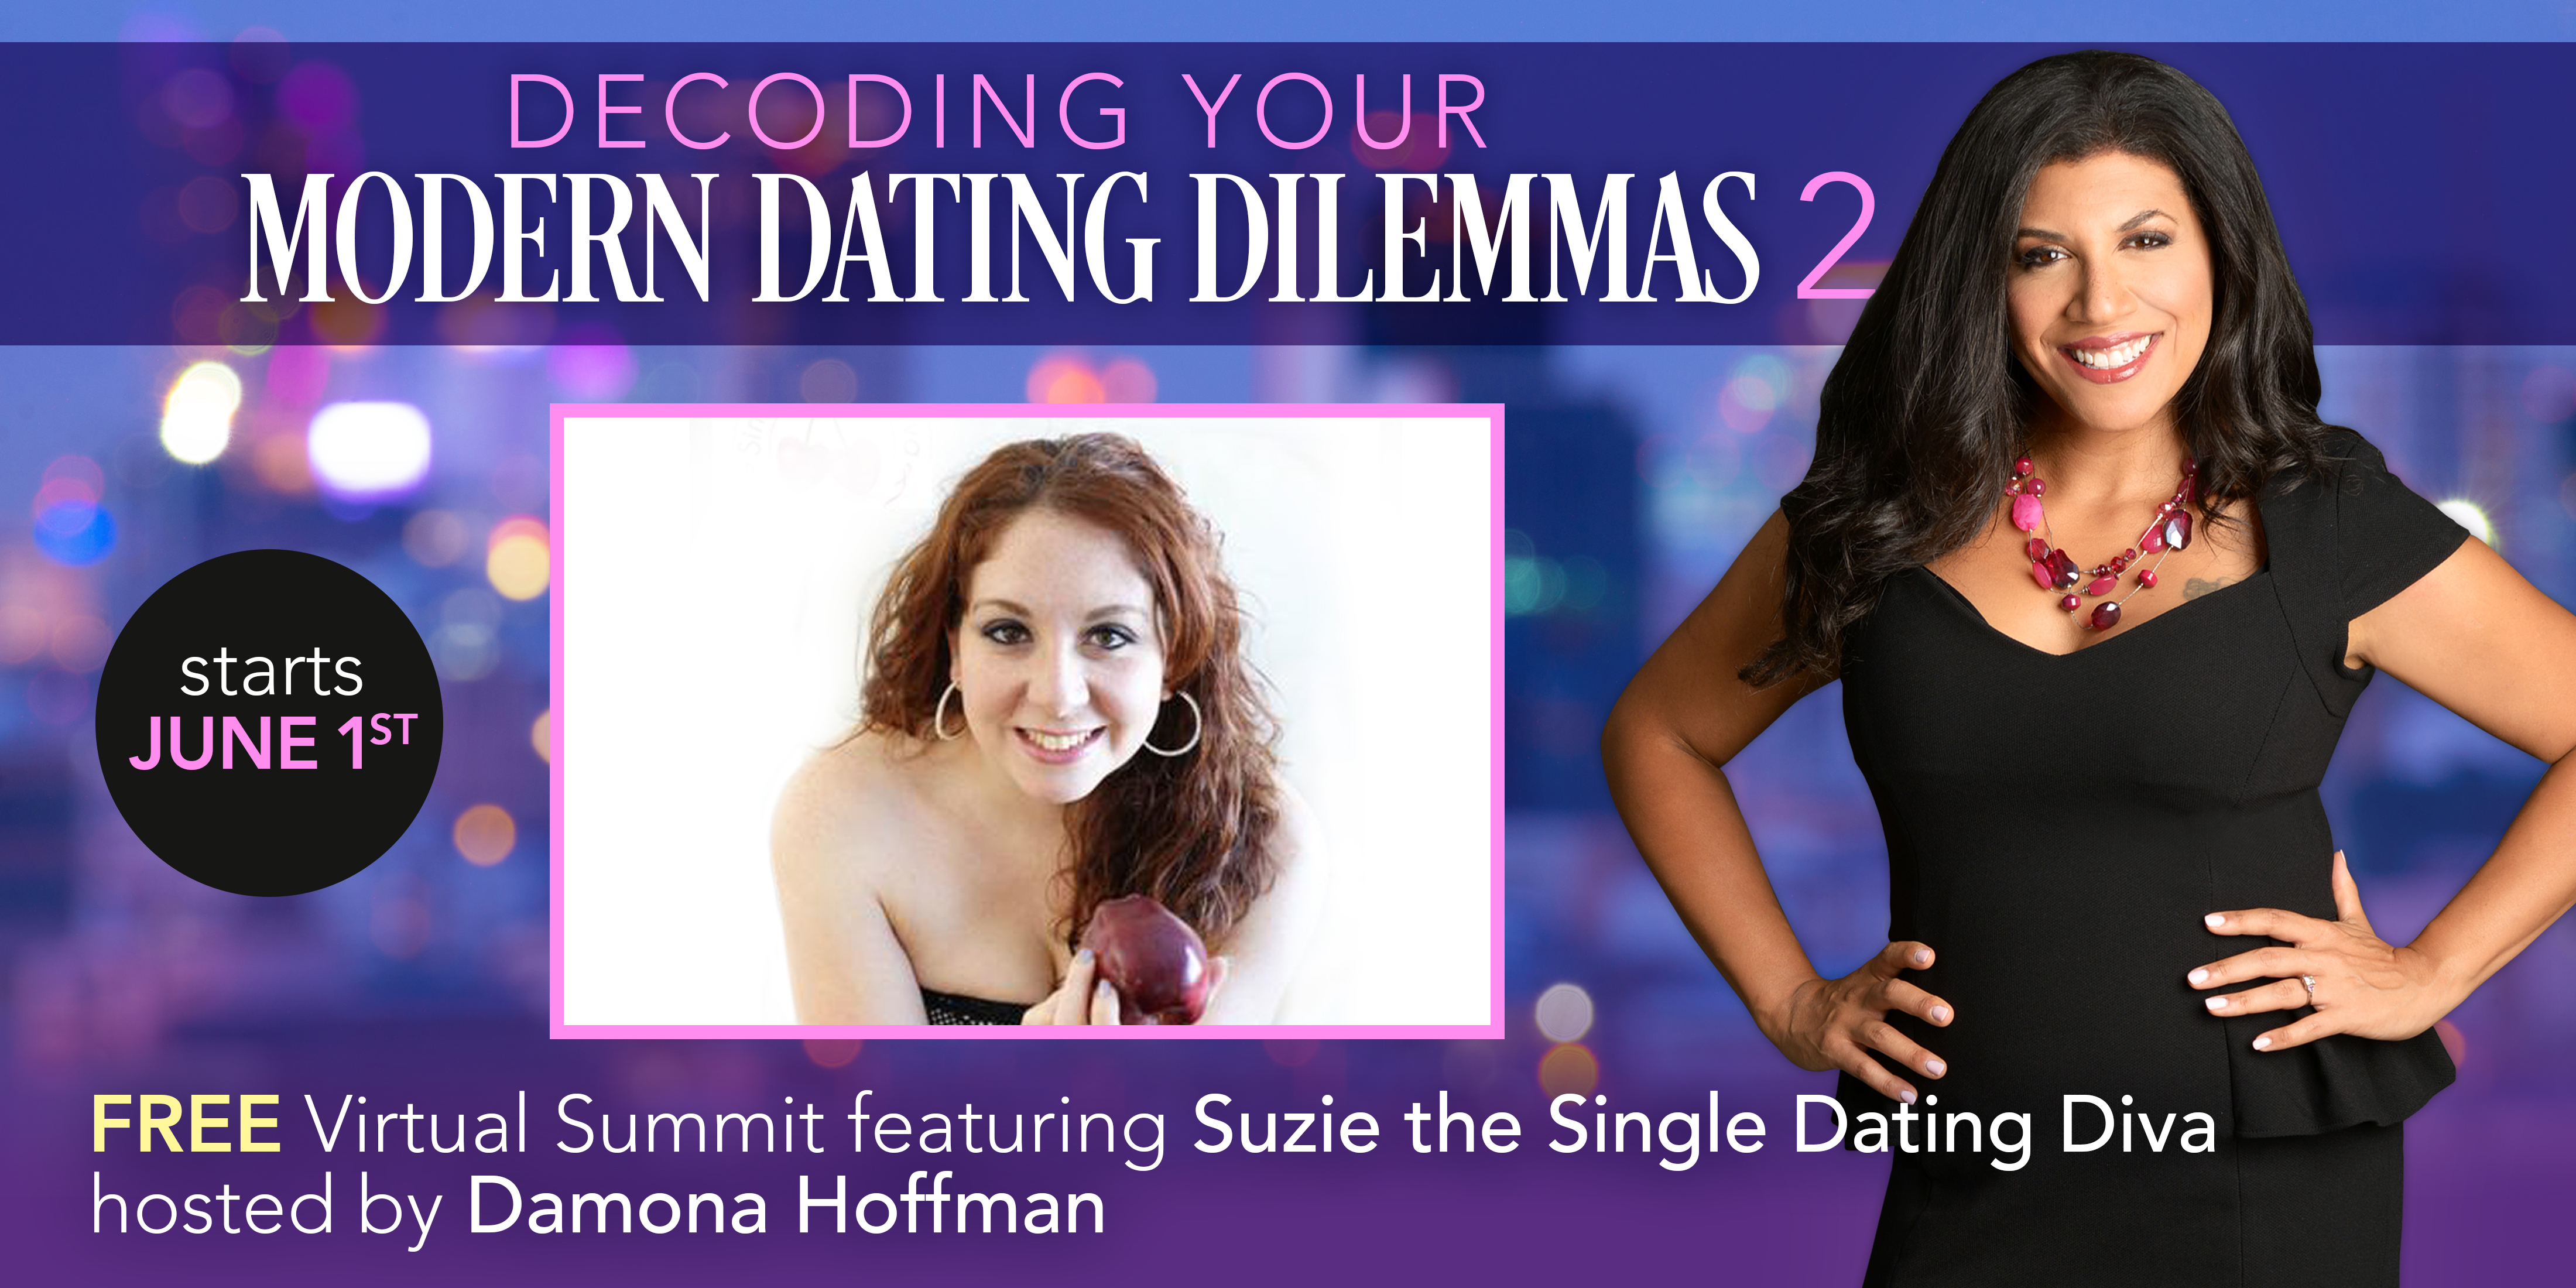 Being courted dating divas